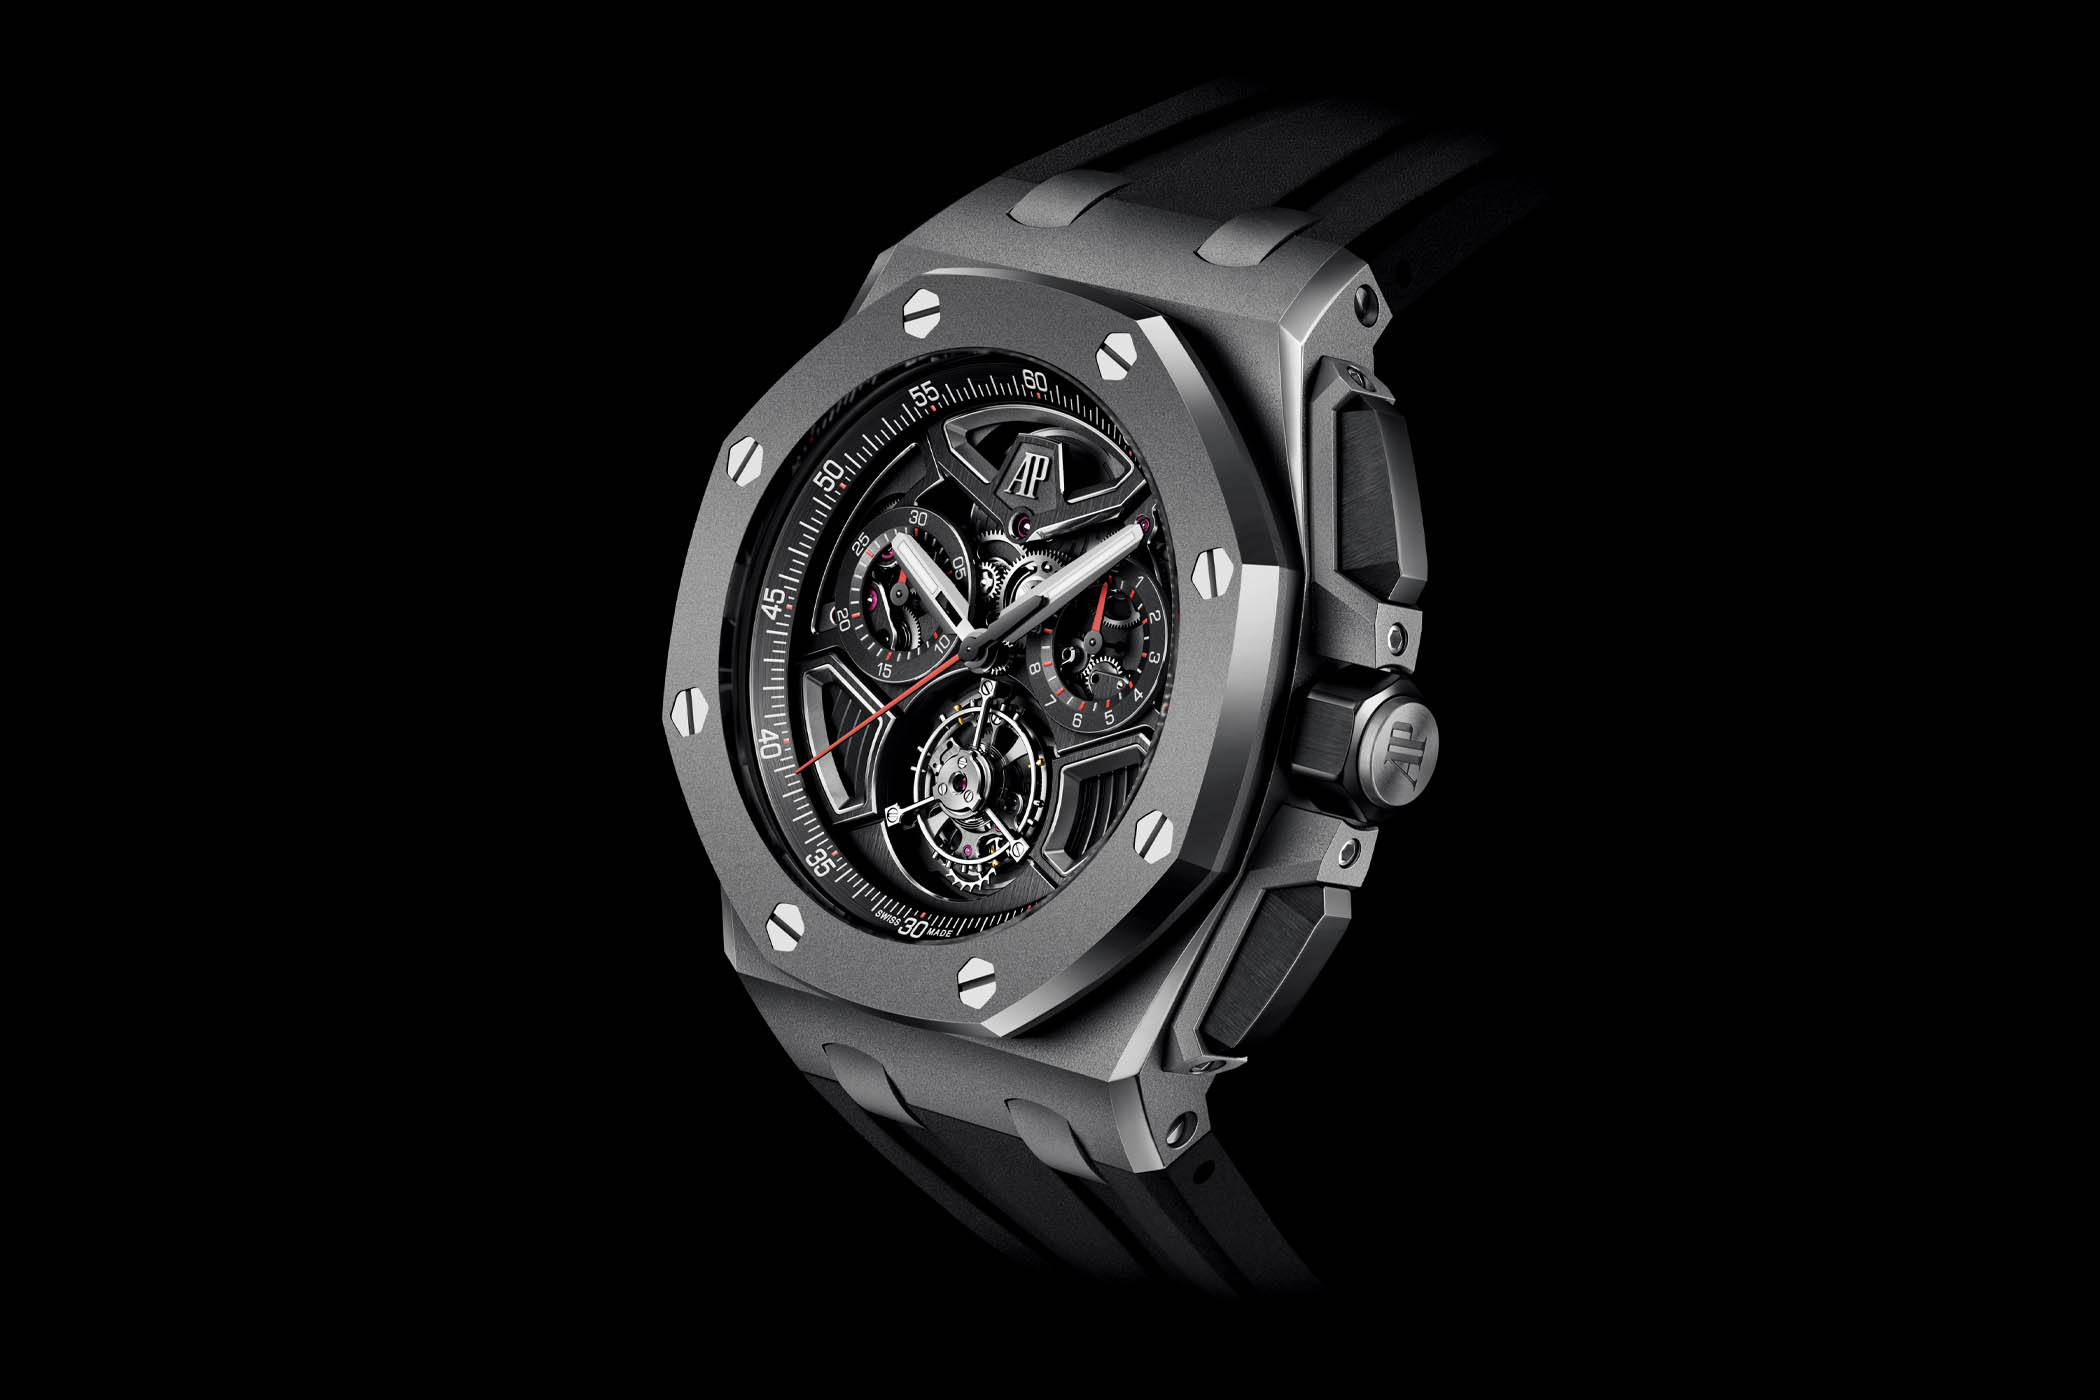 Audemars Piguet Royal Oak Offshore Selfwinding Flying Tourbillon Flyback Chronograph 26622TI